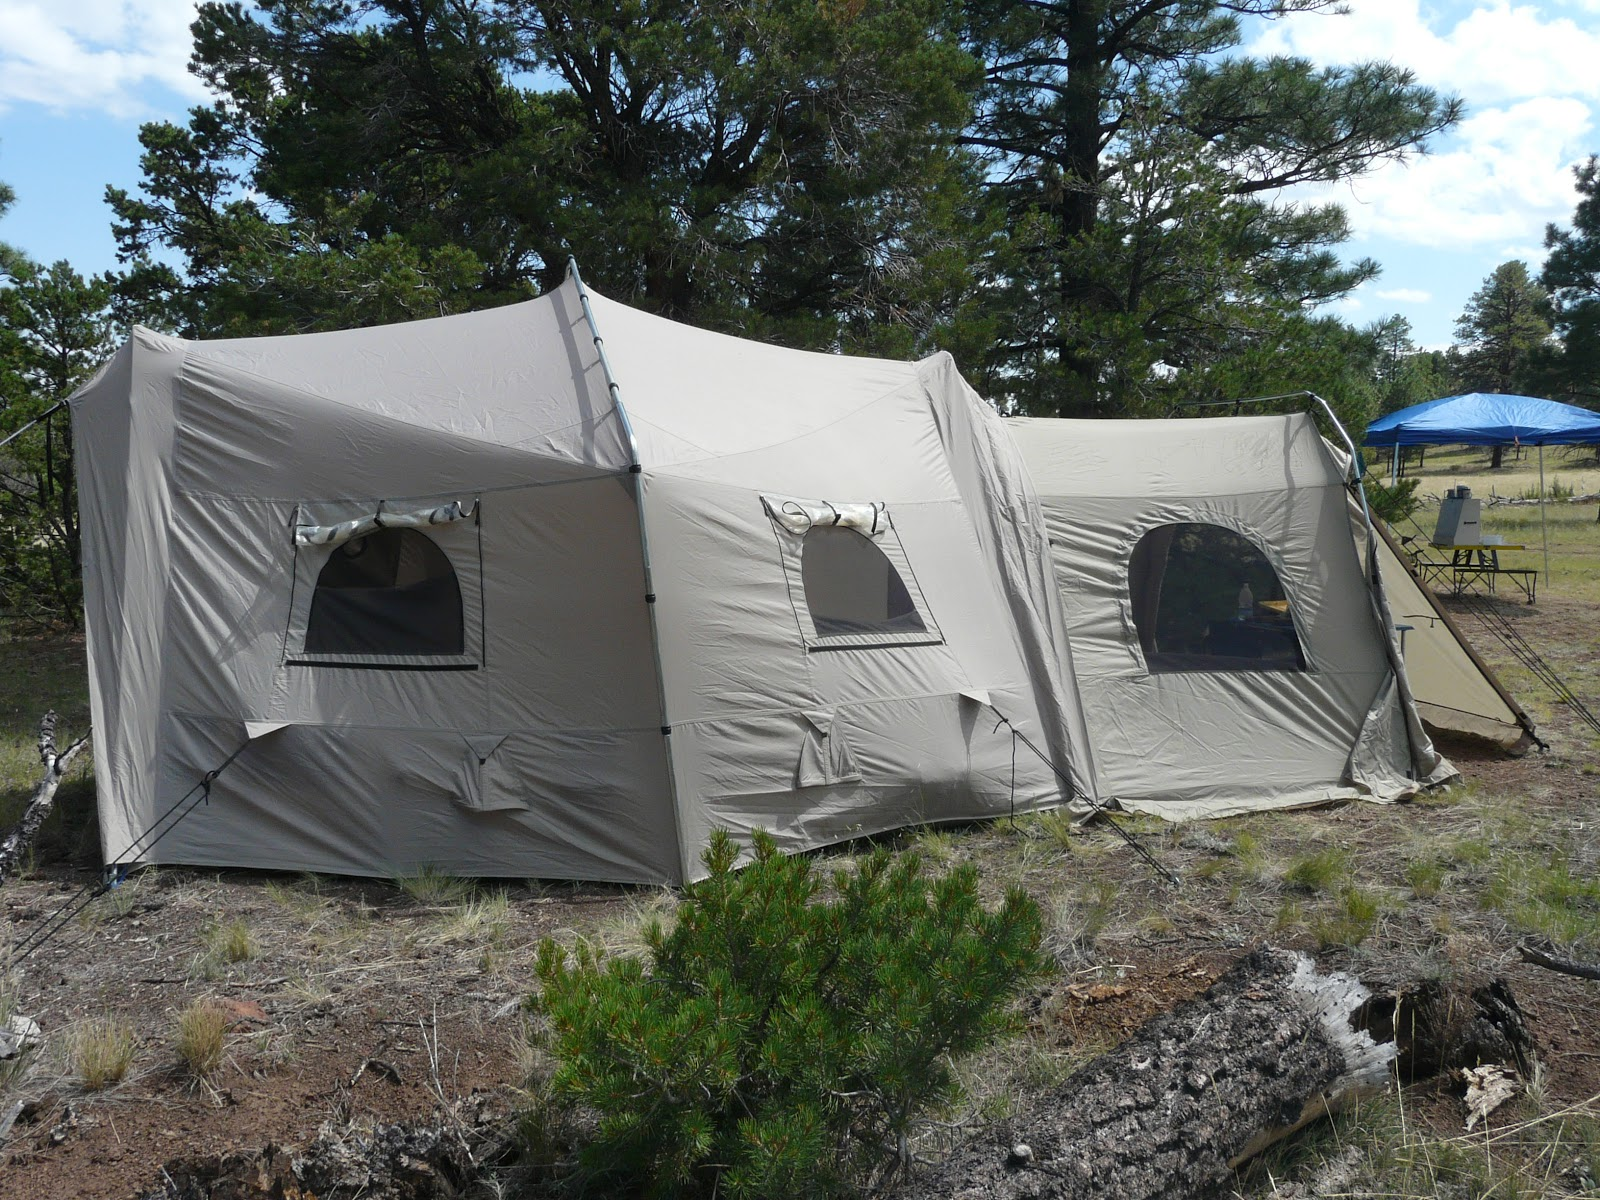 Team Kendrick Outdoors & Cabelau0027s Bighorn II Tent Review